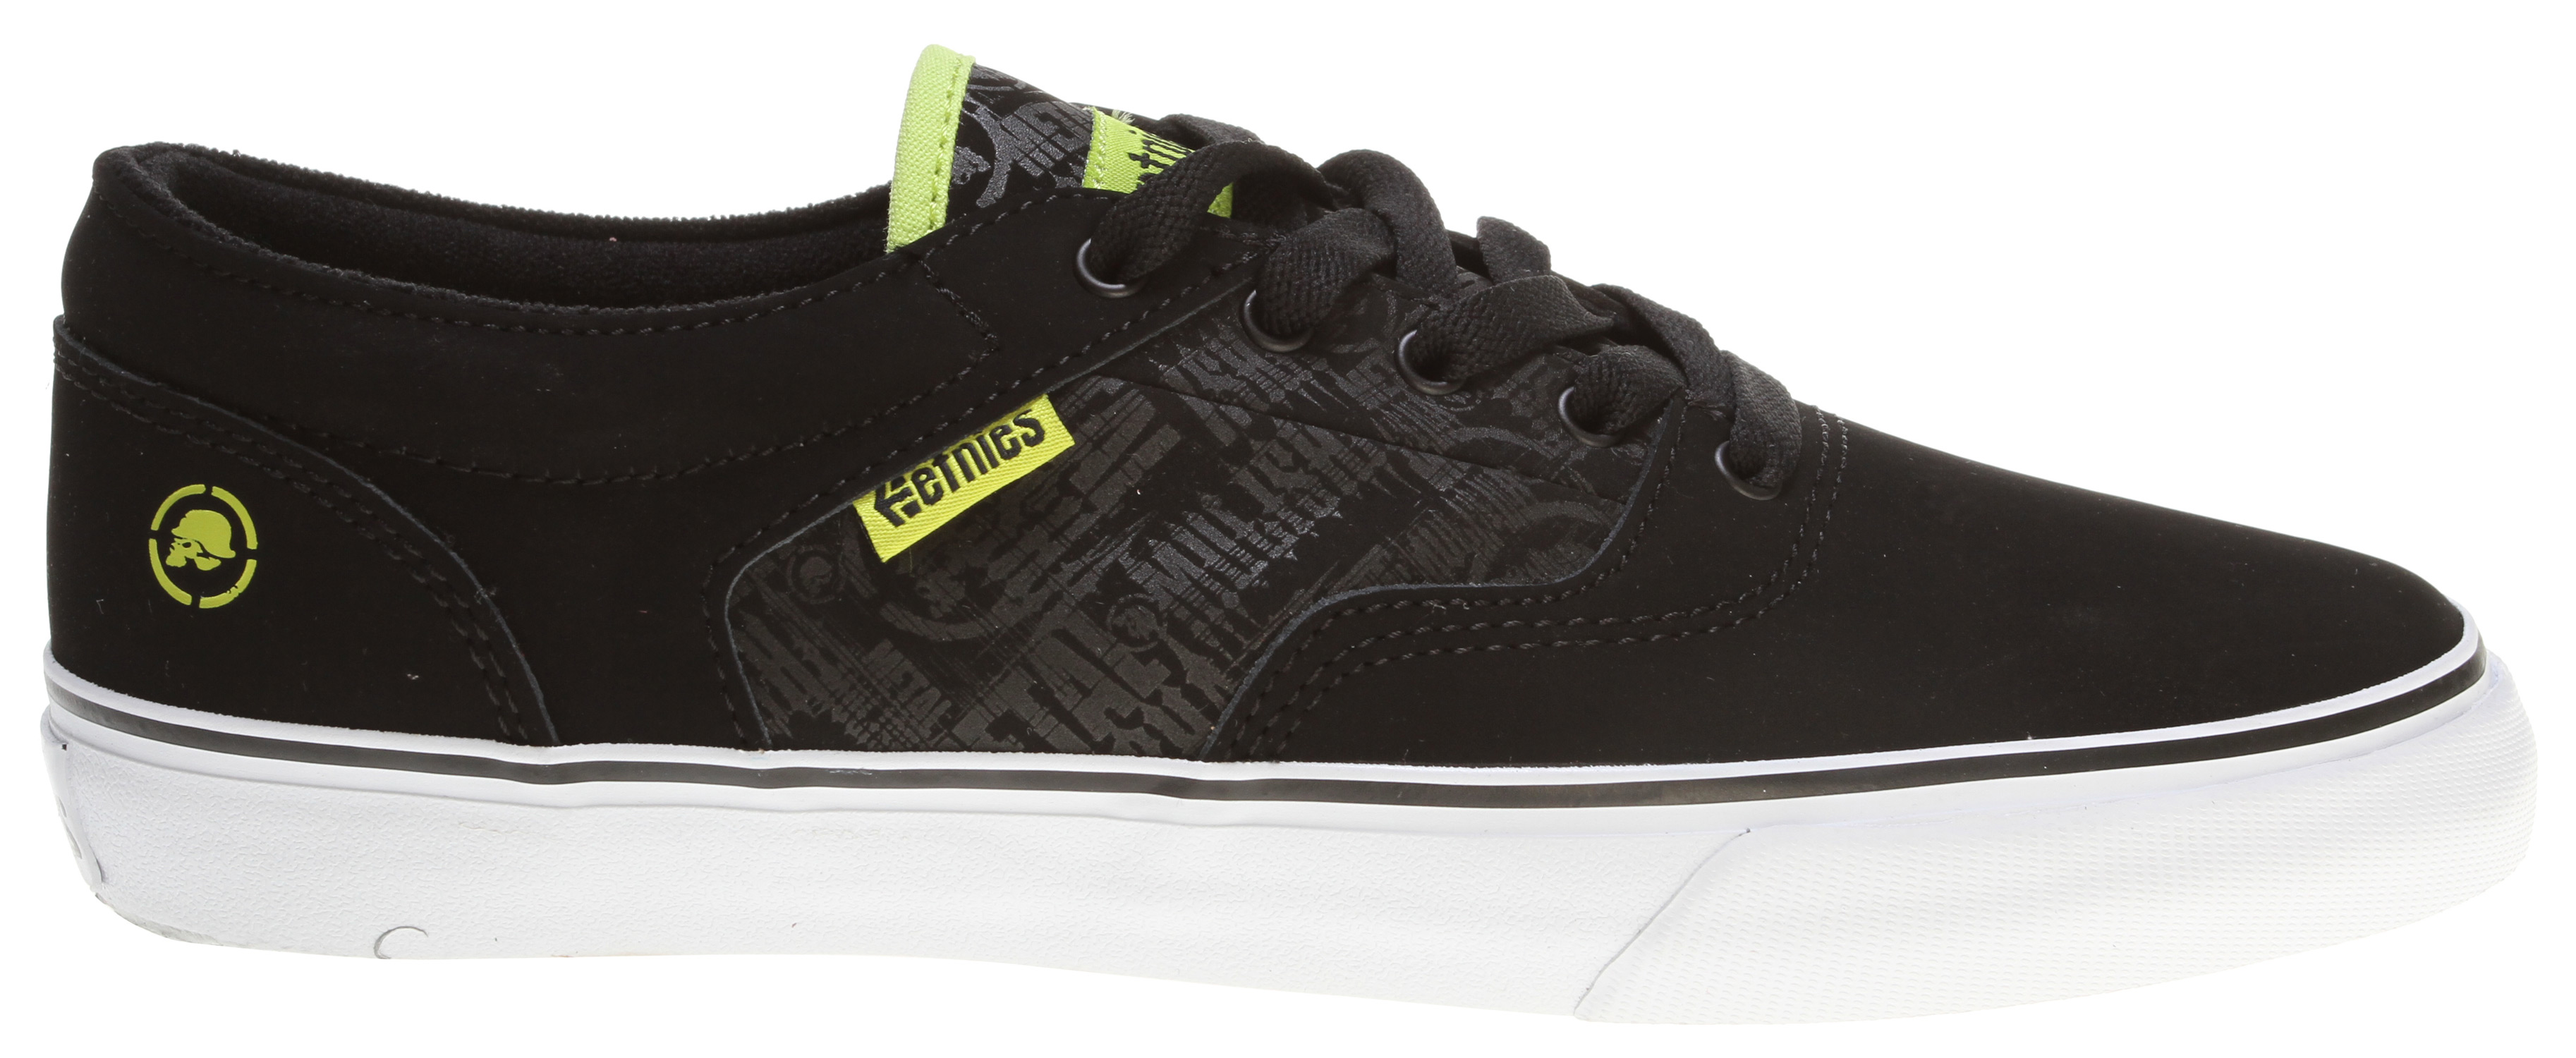 Skateboard Key Features of the Etnies Metal Mulisha Fairfax Skate Shoes: Classic etnies styling Vulcanized dropped to the floor construction Thin padded tongue and collar STI DTF Pro 1 footbed 400 NBS rubber - $36.95